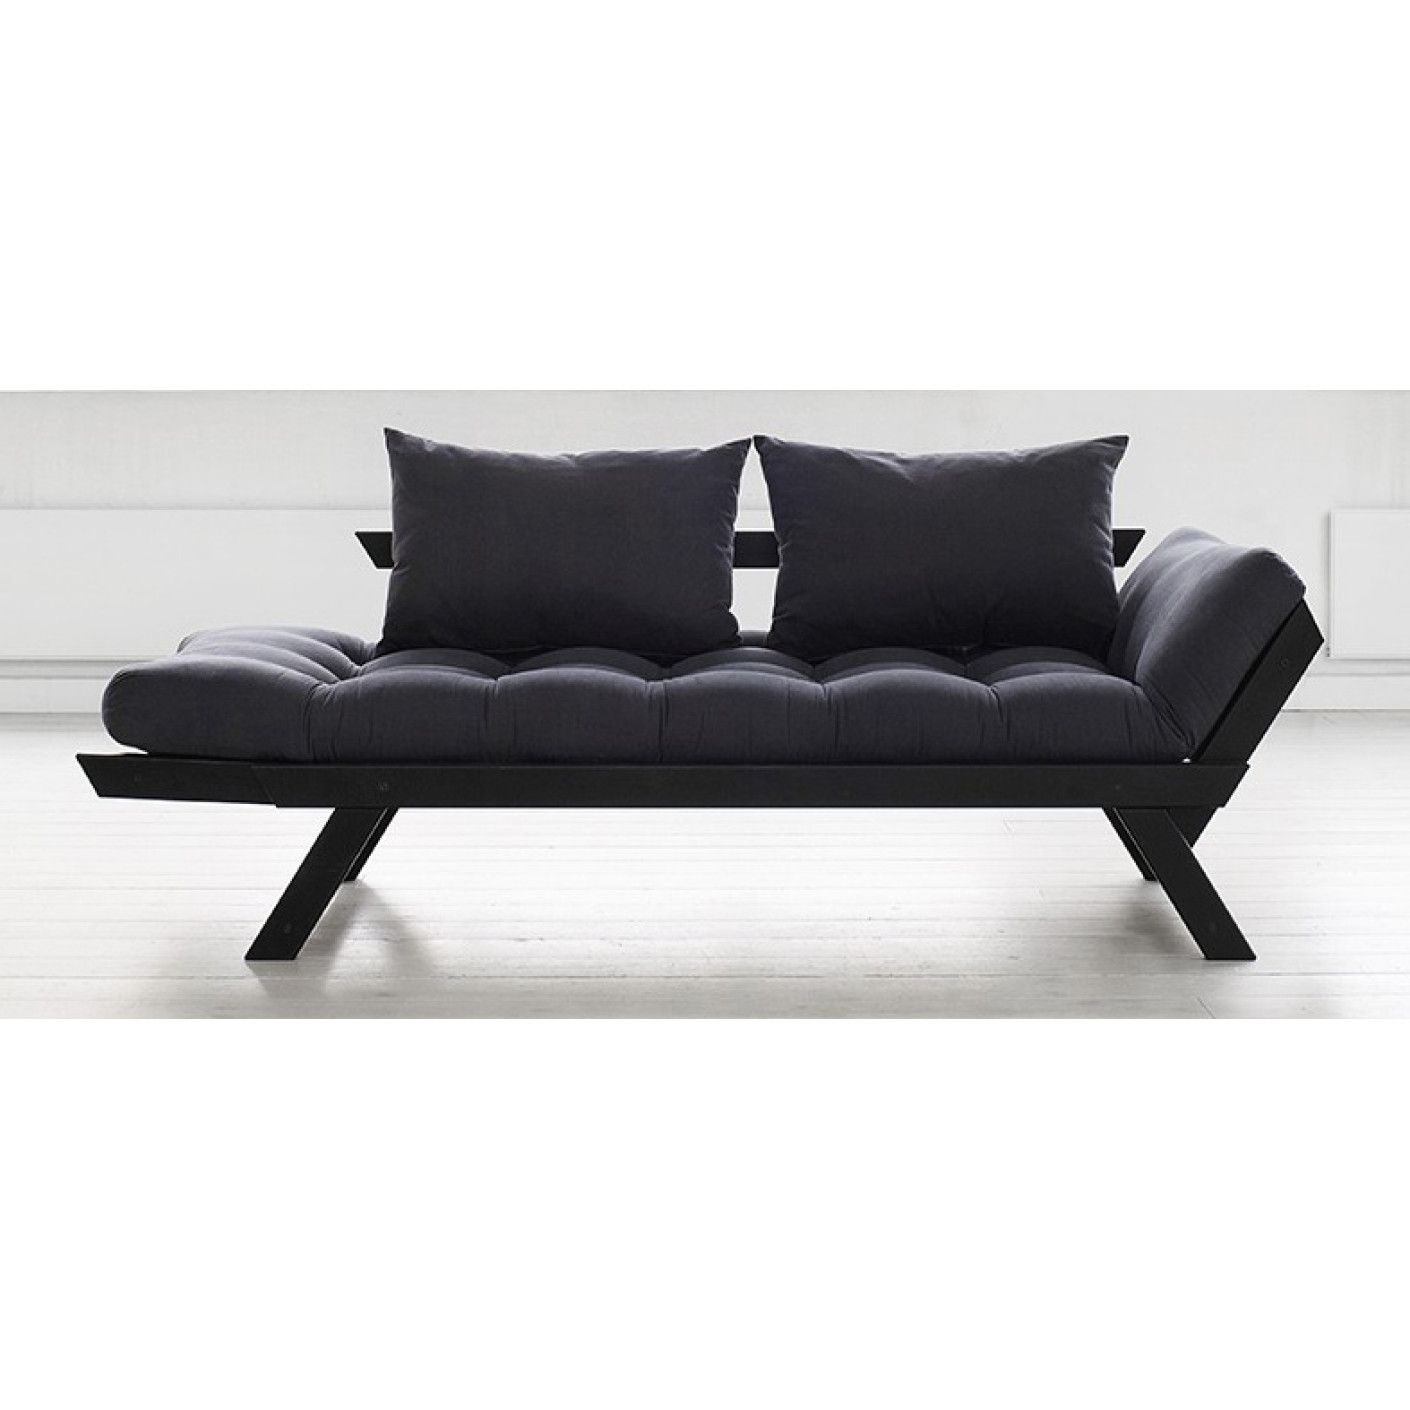 buy bebop replica convertible sofa bed online on fortytwo from just rh pinterest com